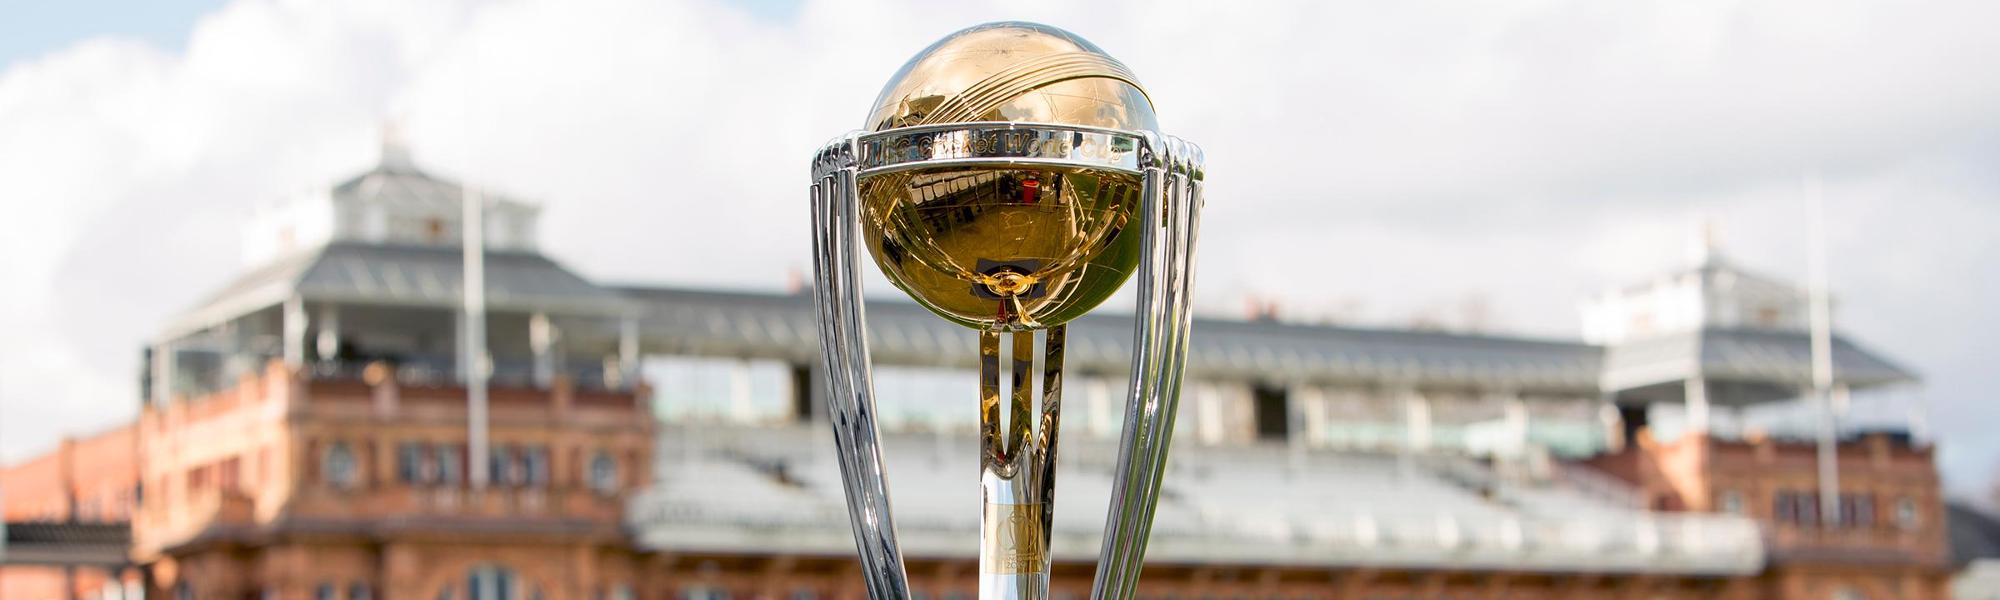 ICC Cricket World Cup (CS)_3.jpg